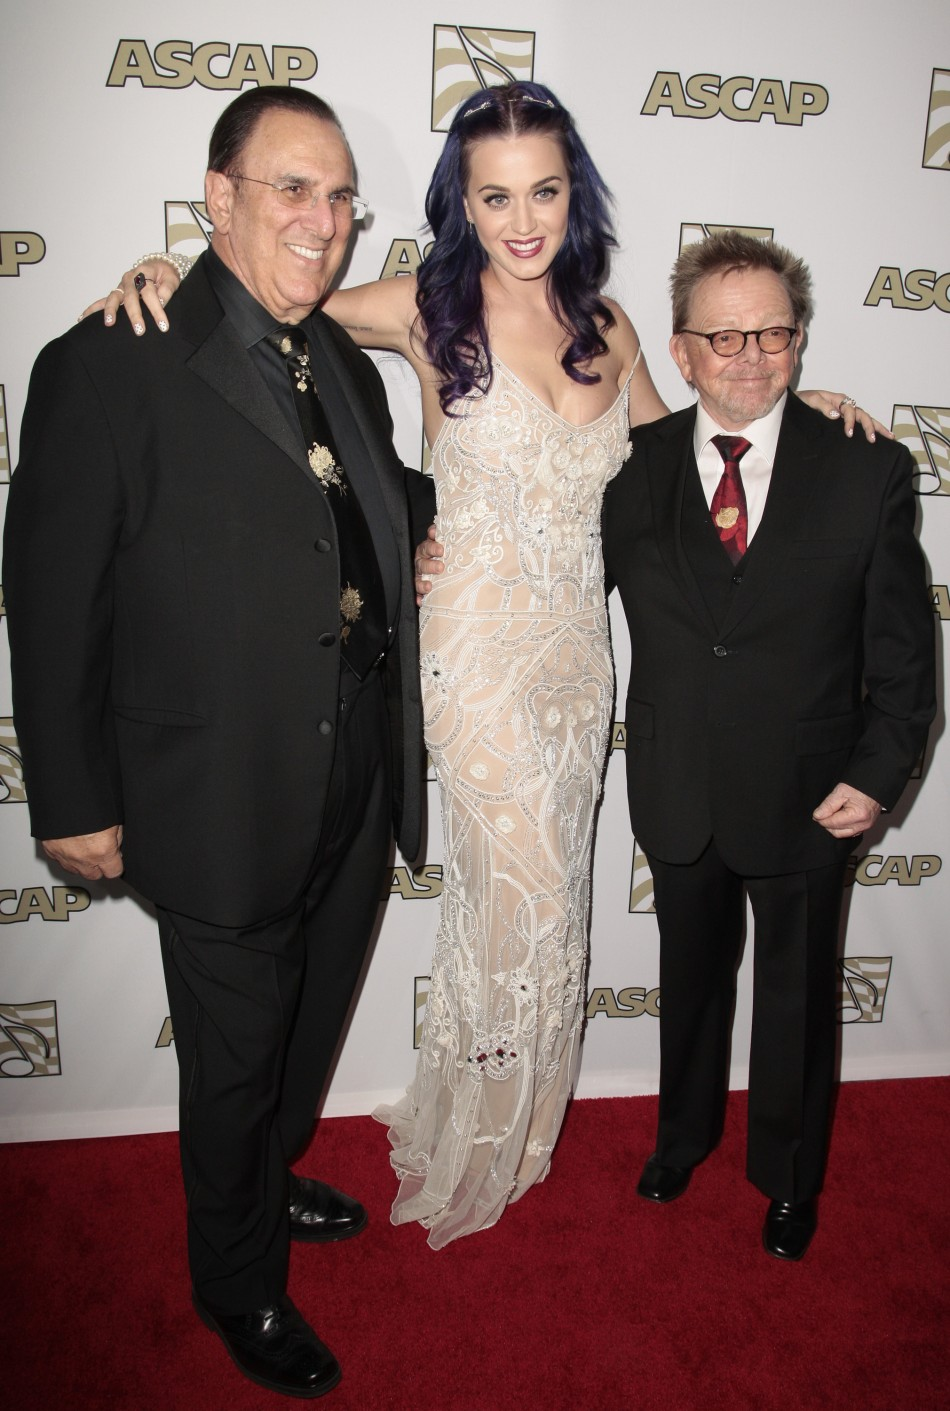 Singer-songwriter Katy Perry, ASCAP CEO John LoFrumento and ASCAP President Paul Williams arrive at the 29th Annual ASCAP Pop Music Awards in Hollywood, California